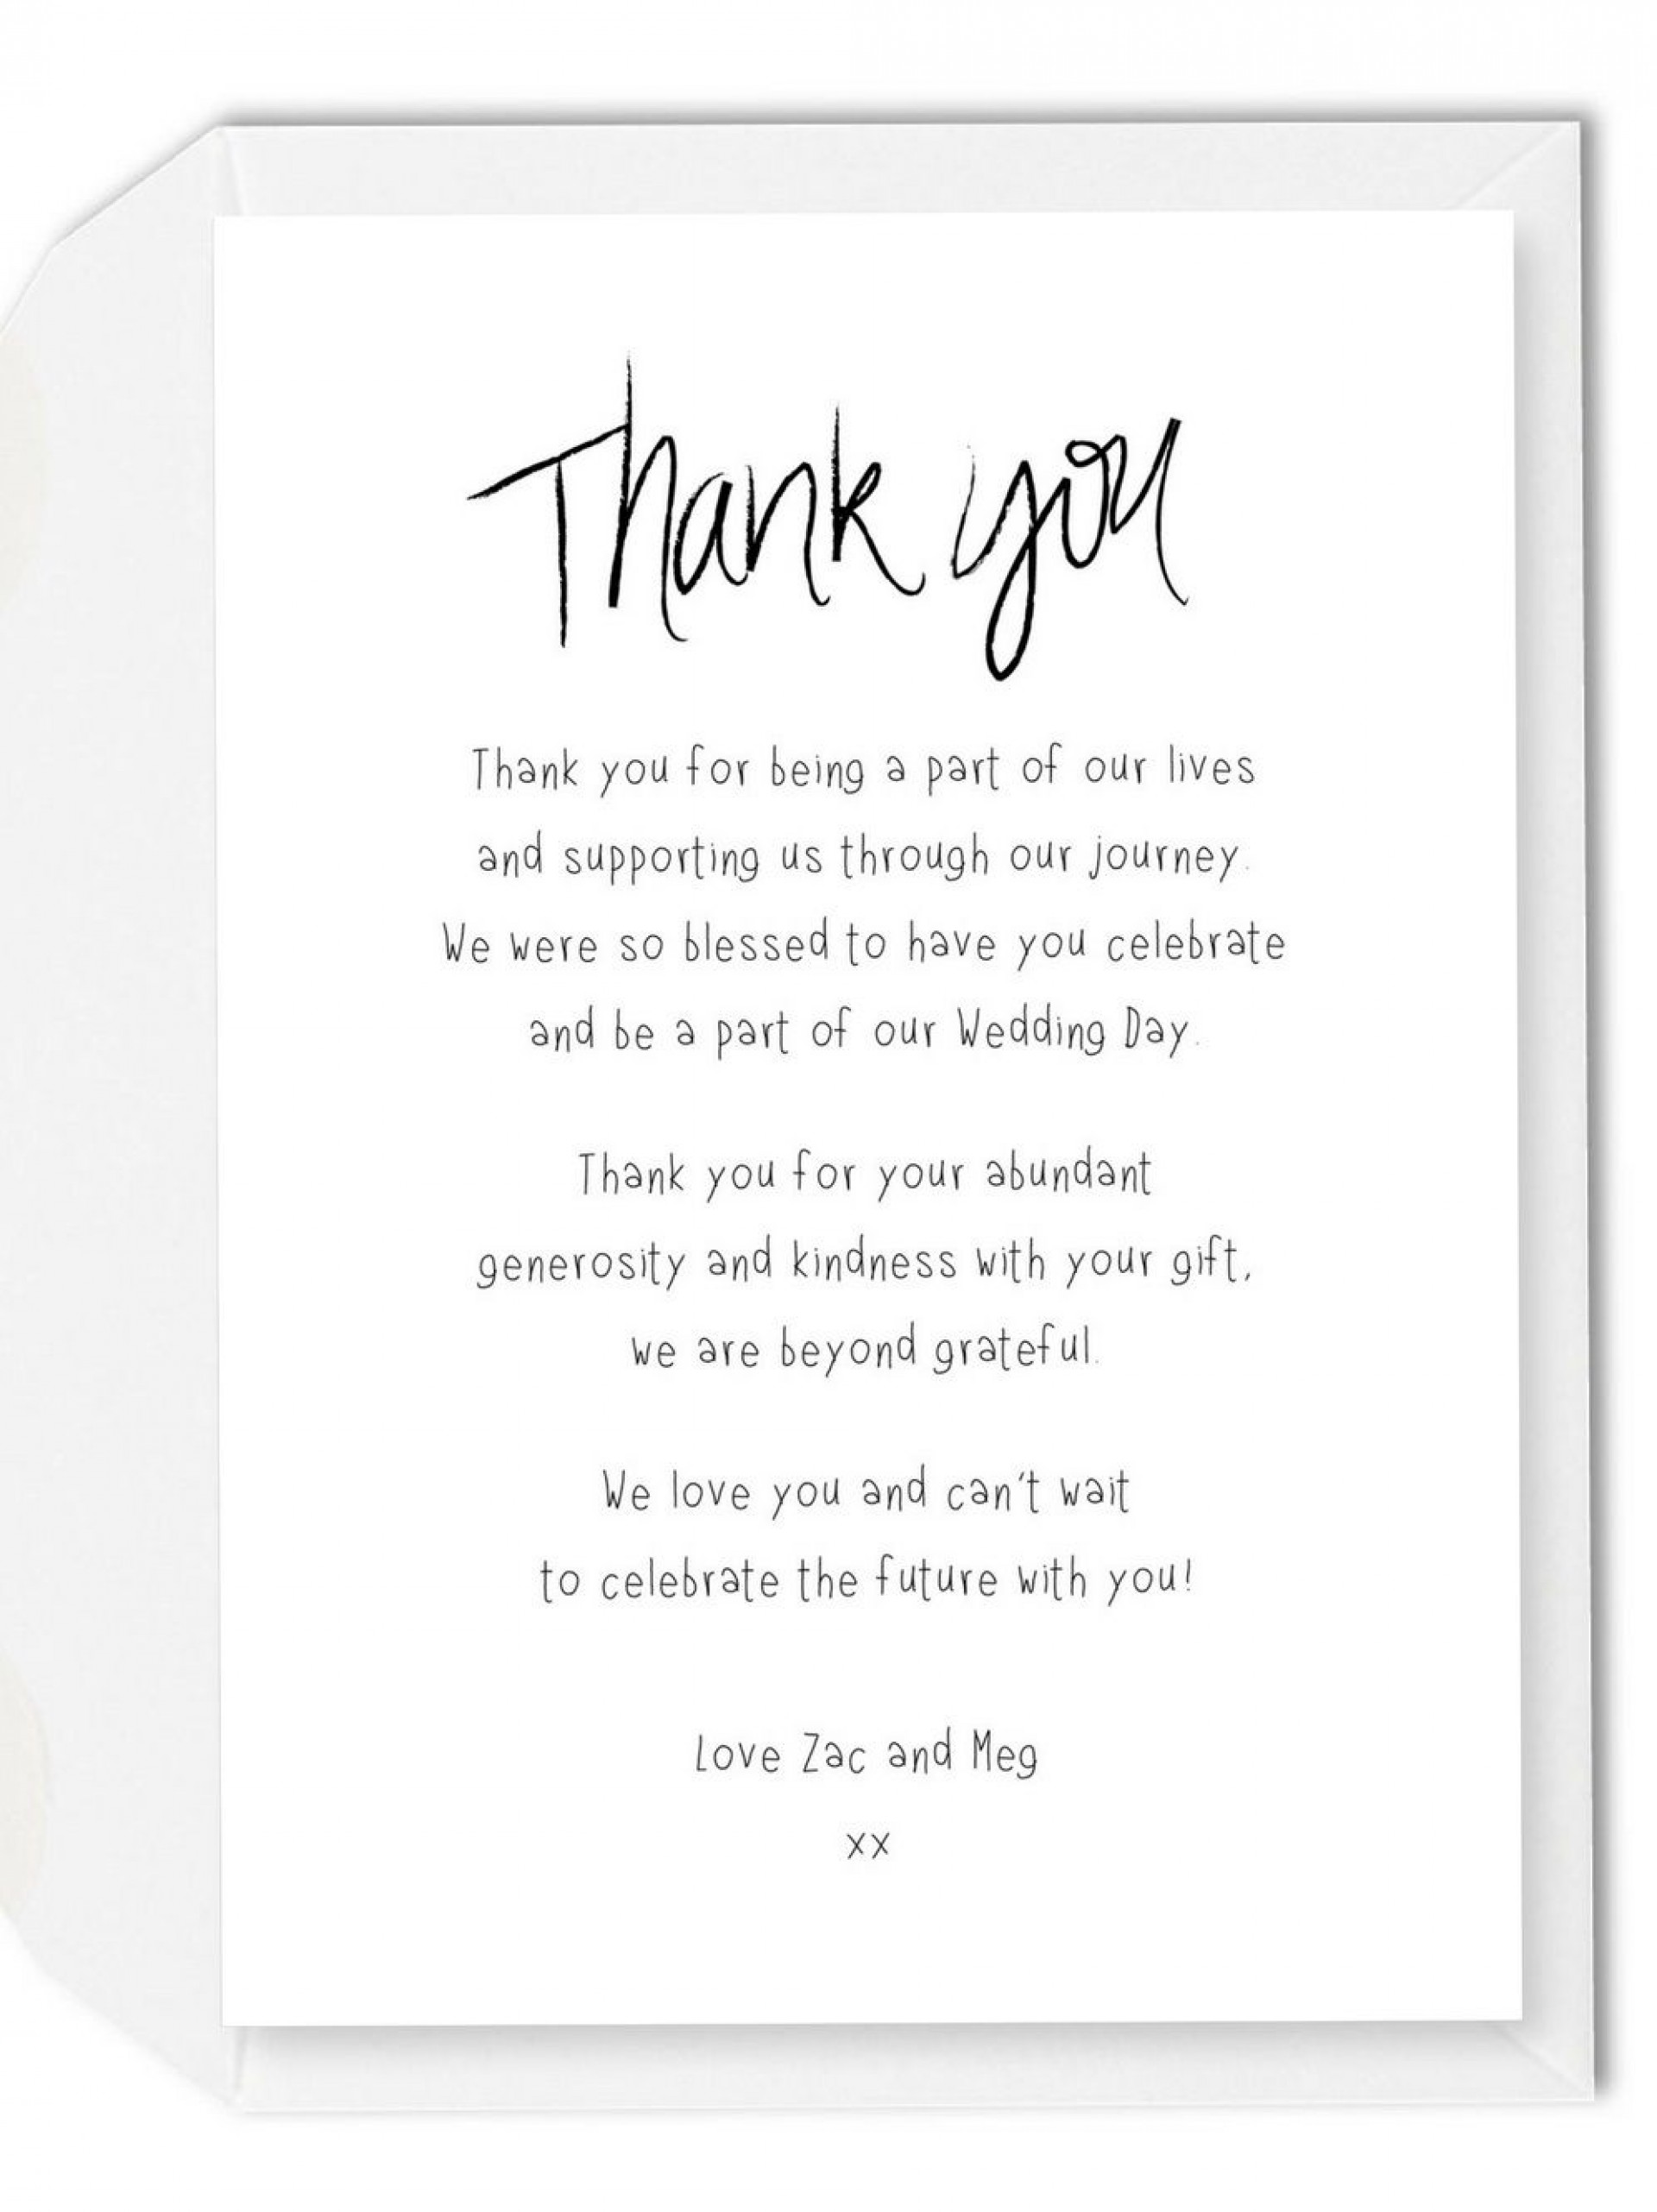 002 Imposing Wedding Thank You Note Template Picture  Money Sample Wording Bridal Shower Gift1920